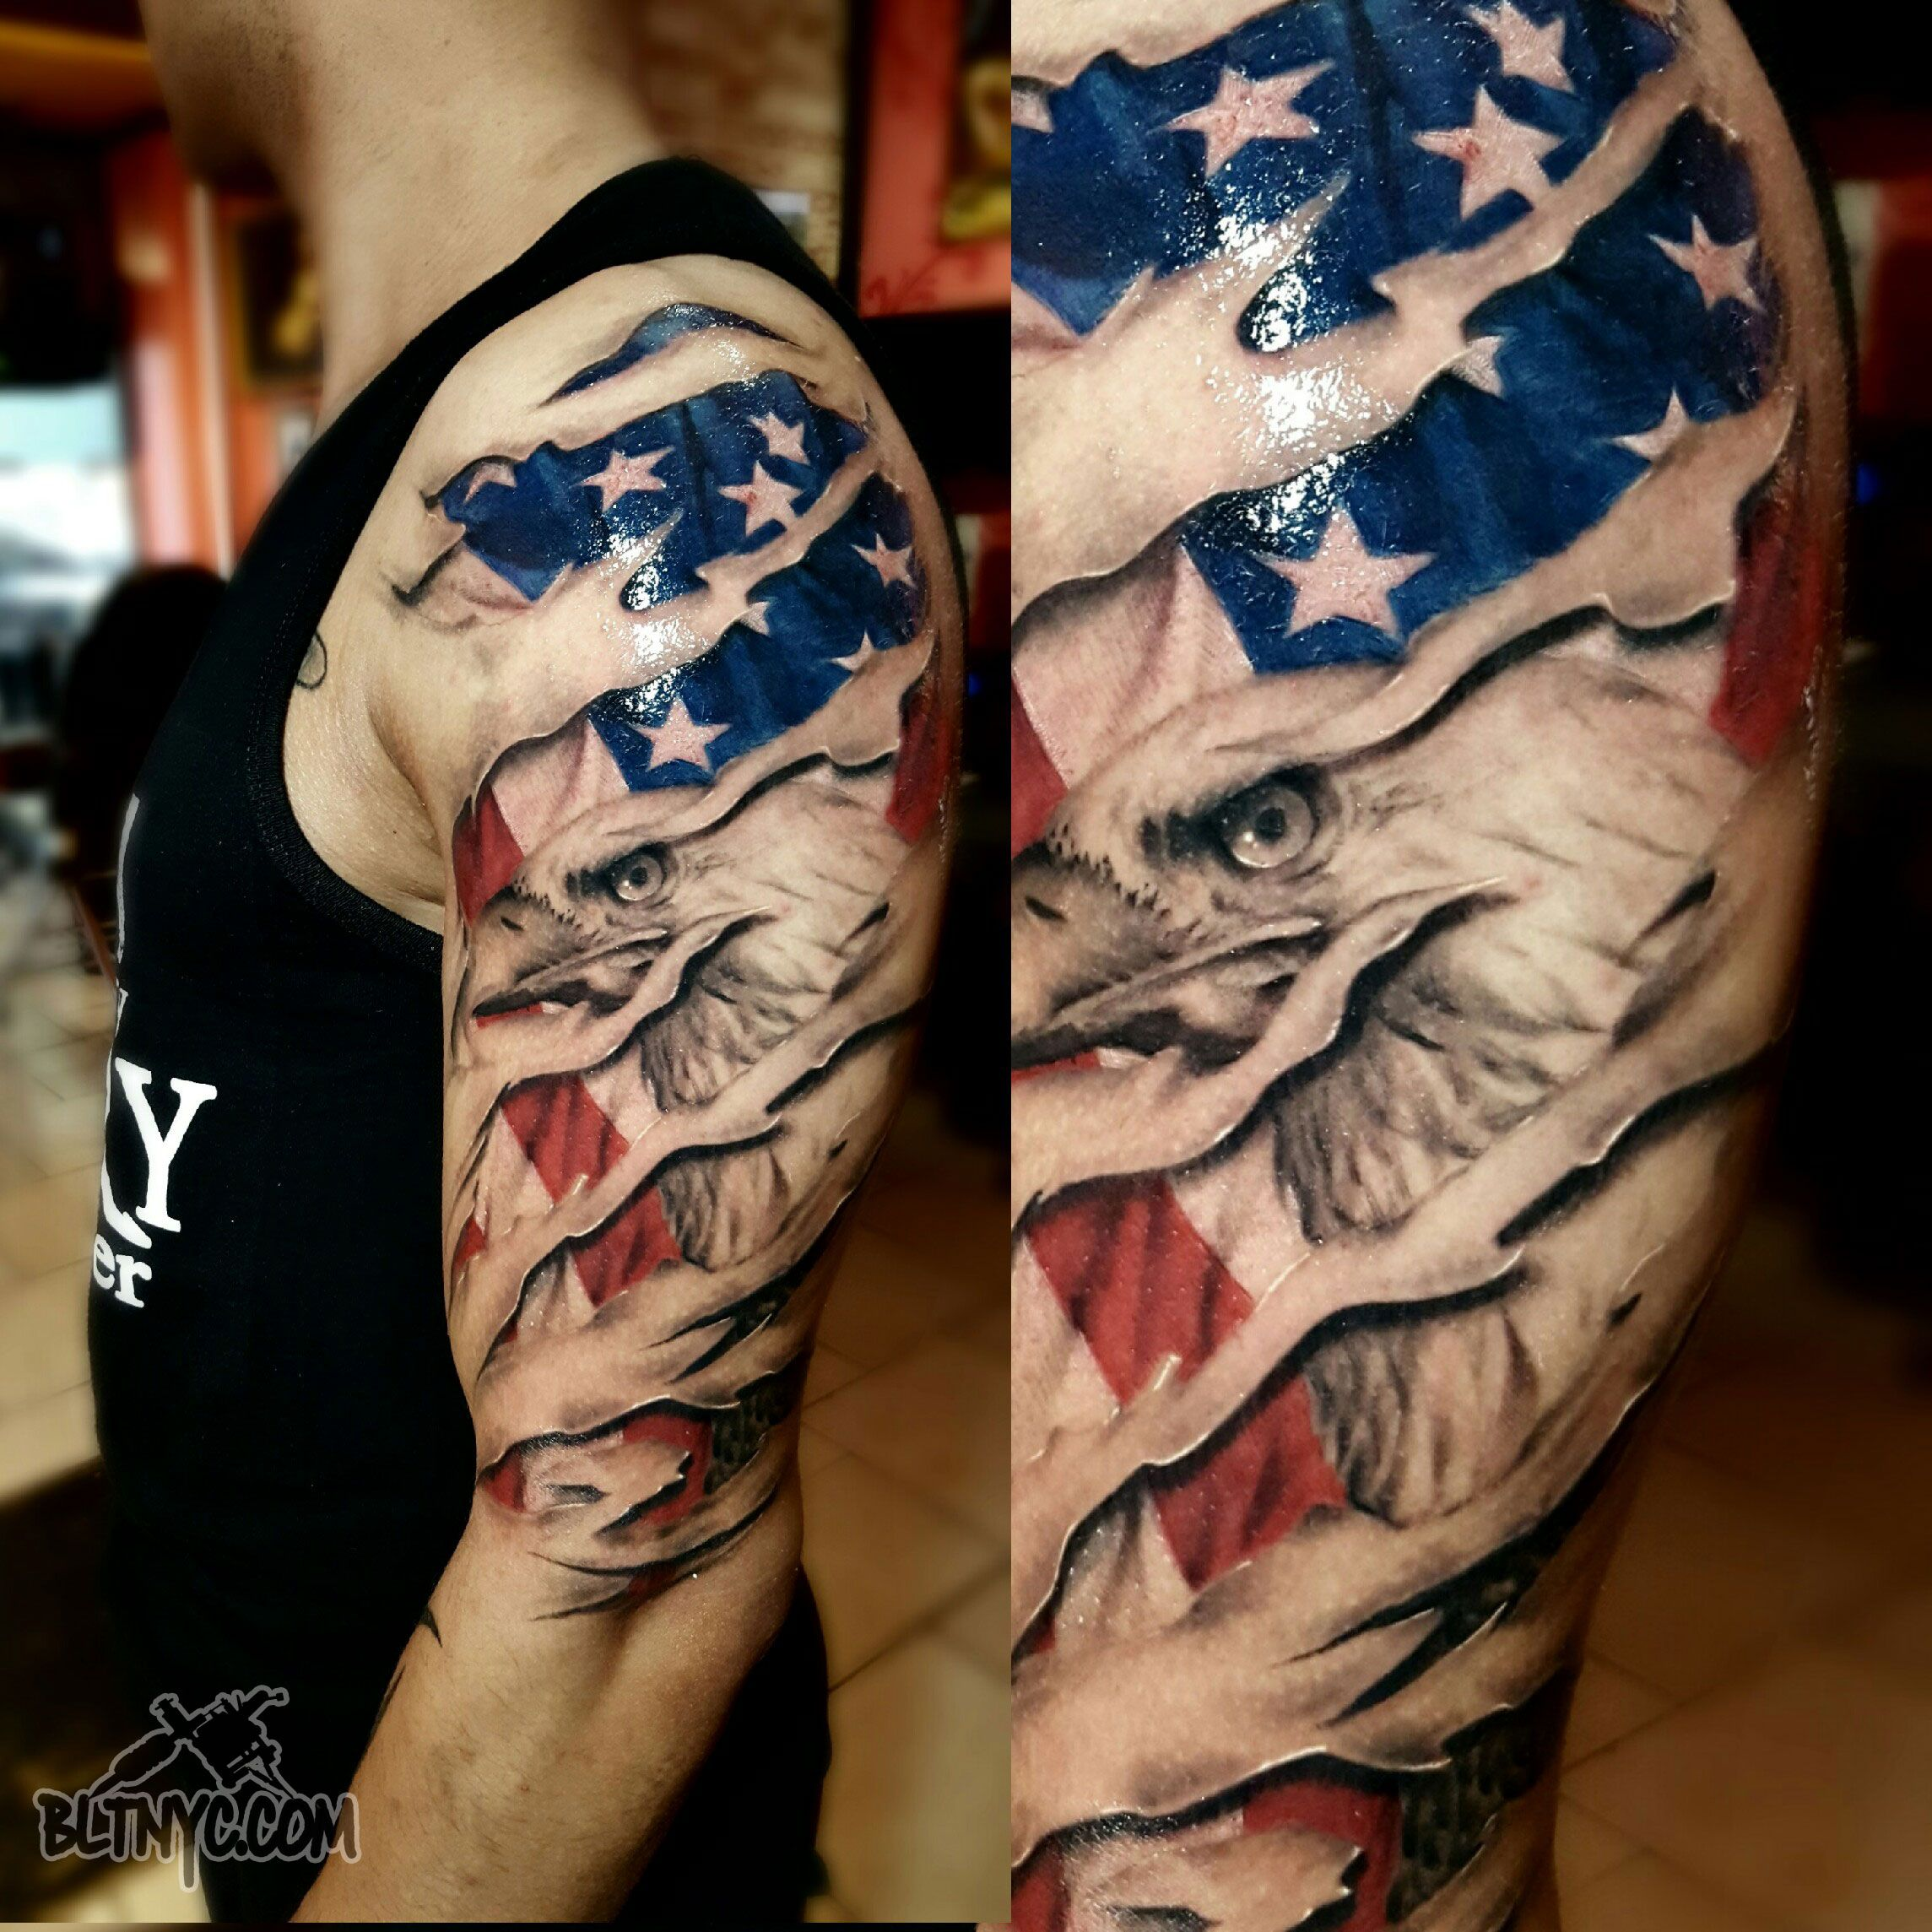 1000 ideas about soldier tattoo on pinterest military tattoos - Shredded Skin With American Flag And Eagle Tattoo By Carlos At Bltnyc Tattoo Shop Astoria Queens Usmc Tattoosmilitary